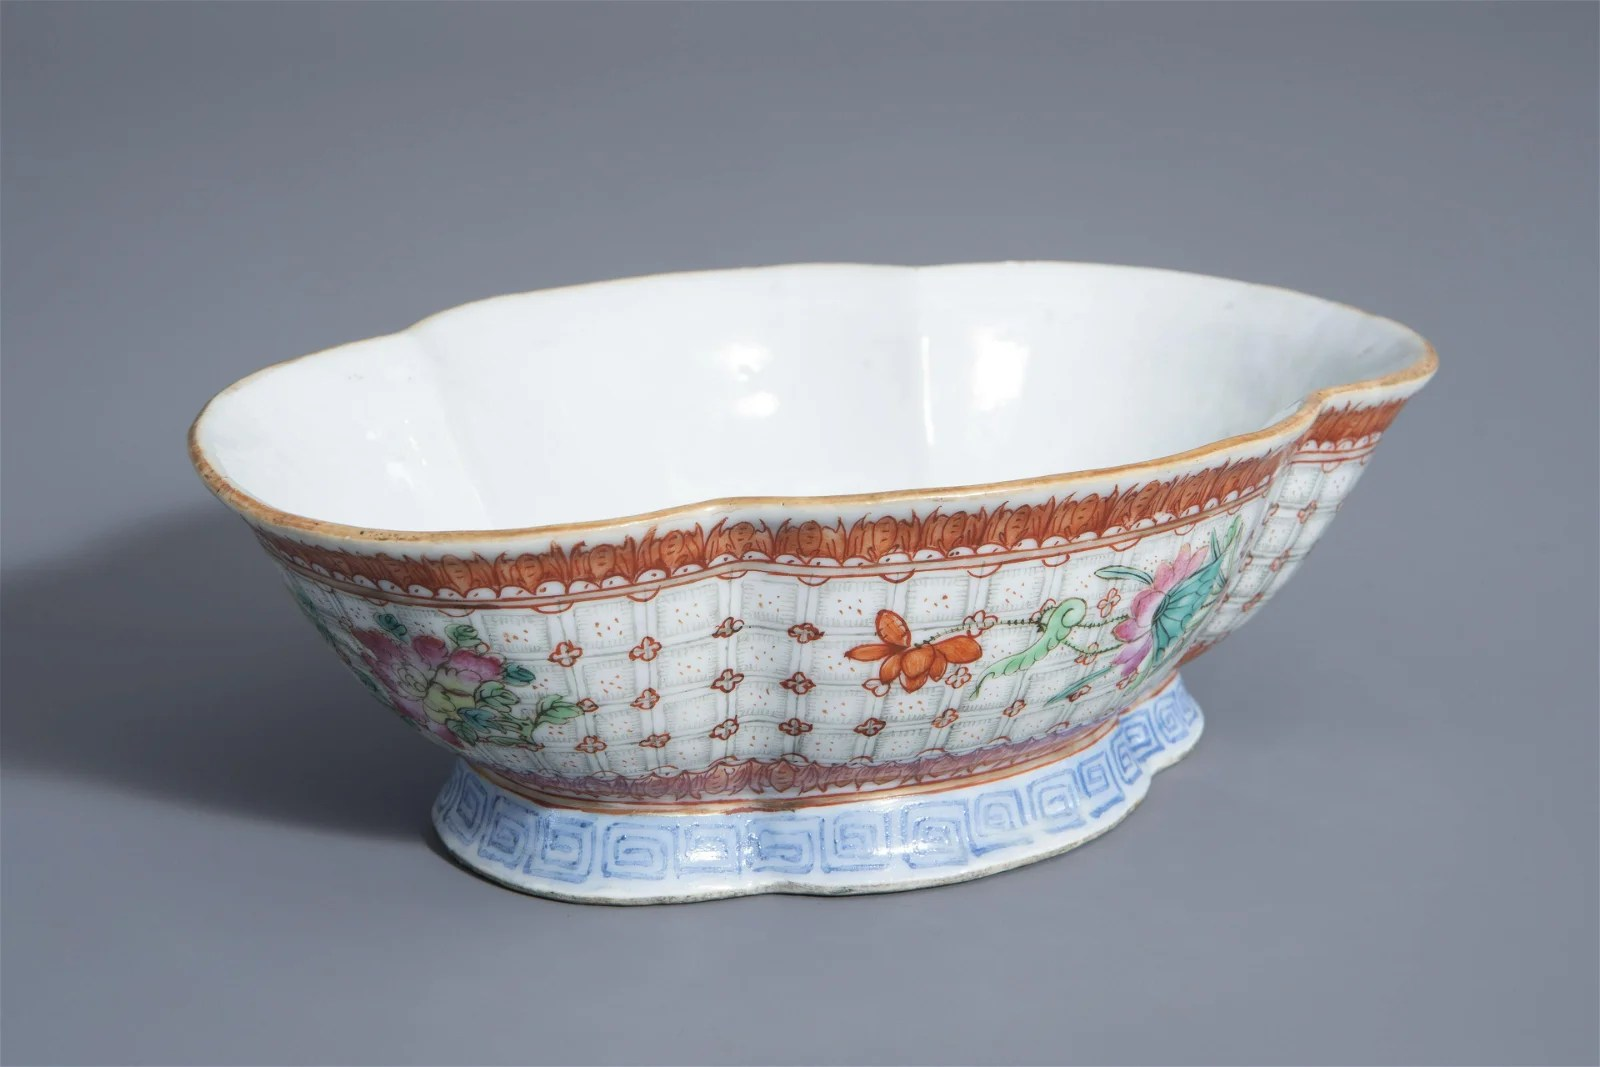 A Chinese famille rose quadrilobed bowl with floral